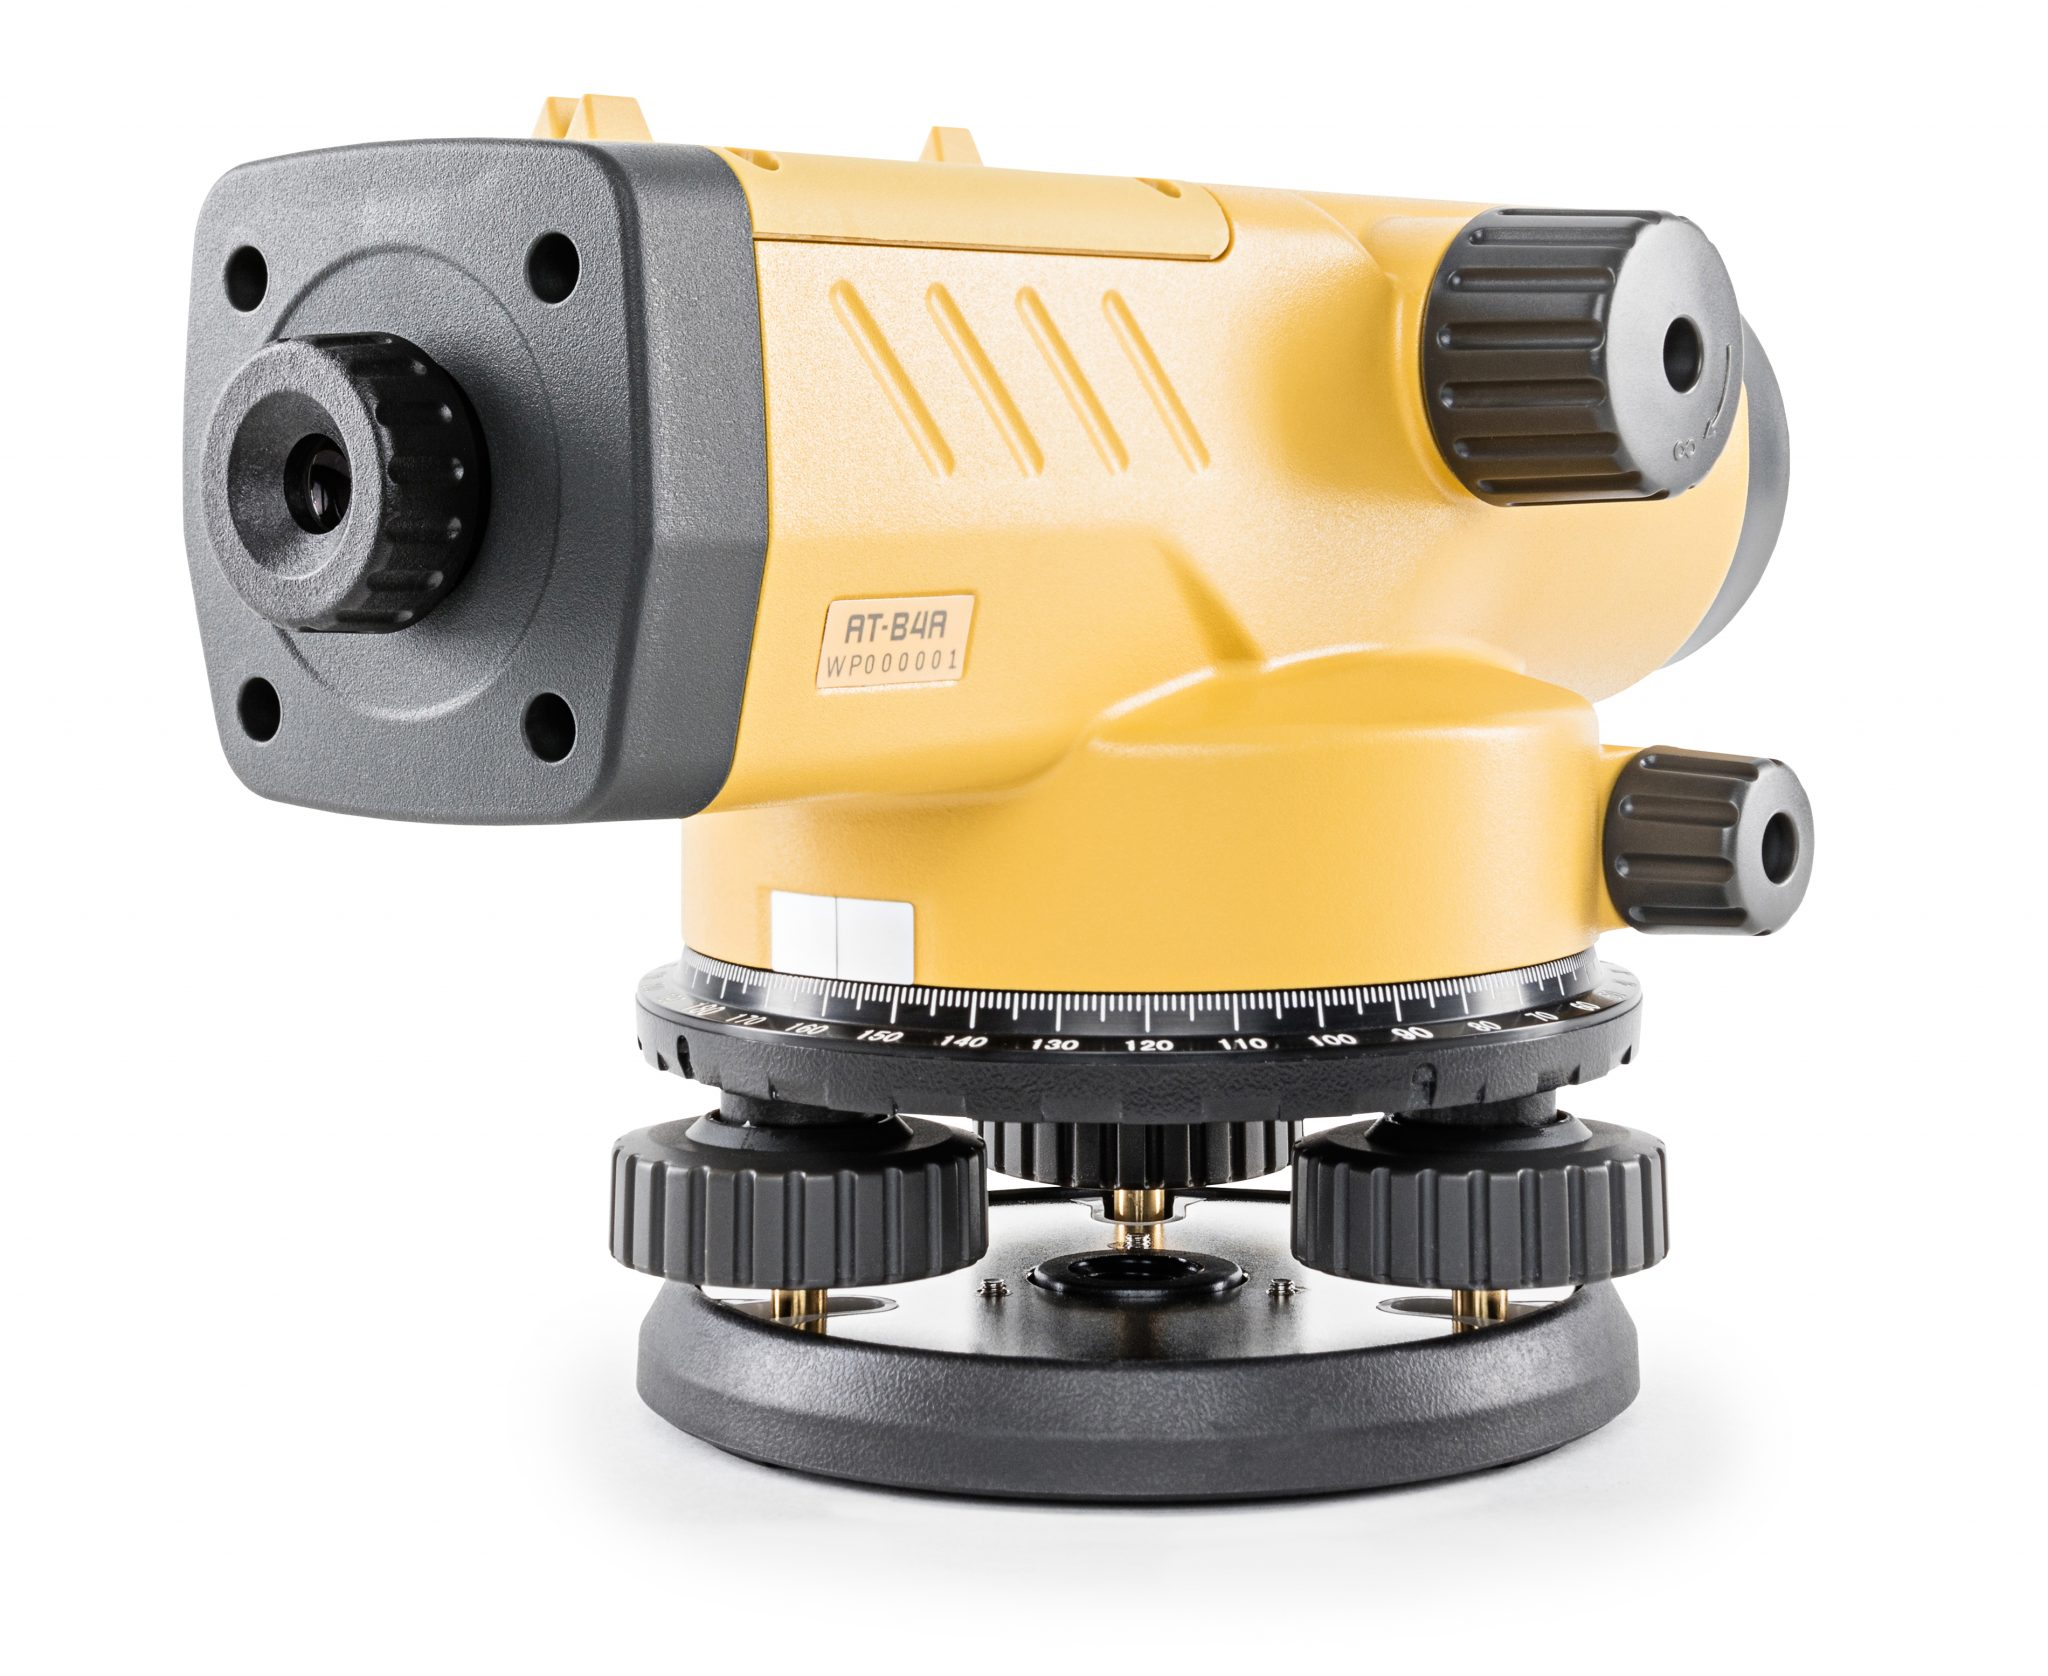 Jual Automatic Level Topcon At-b4a